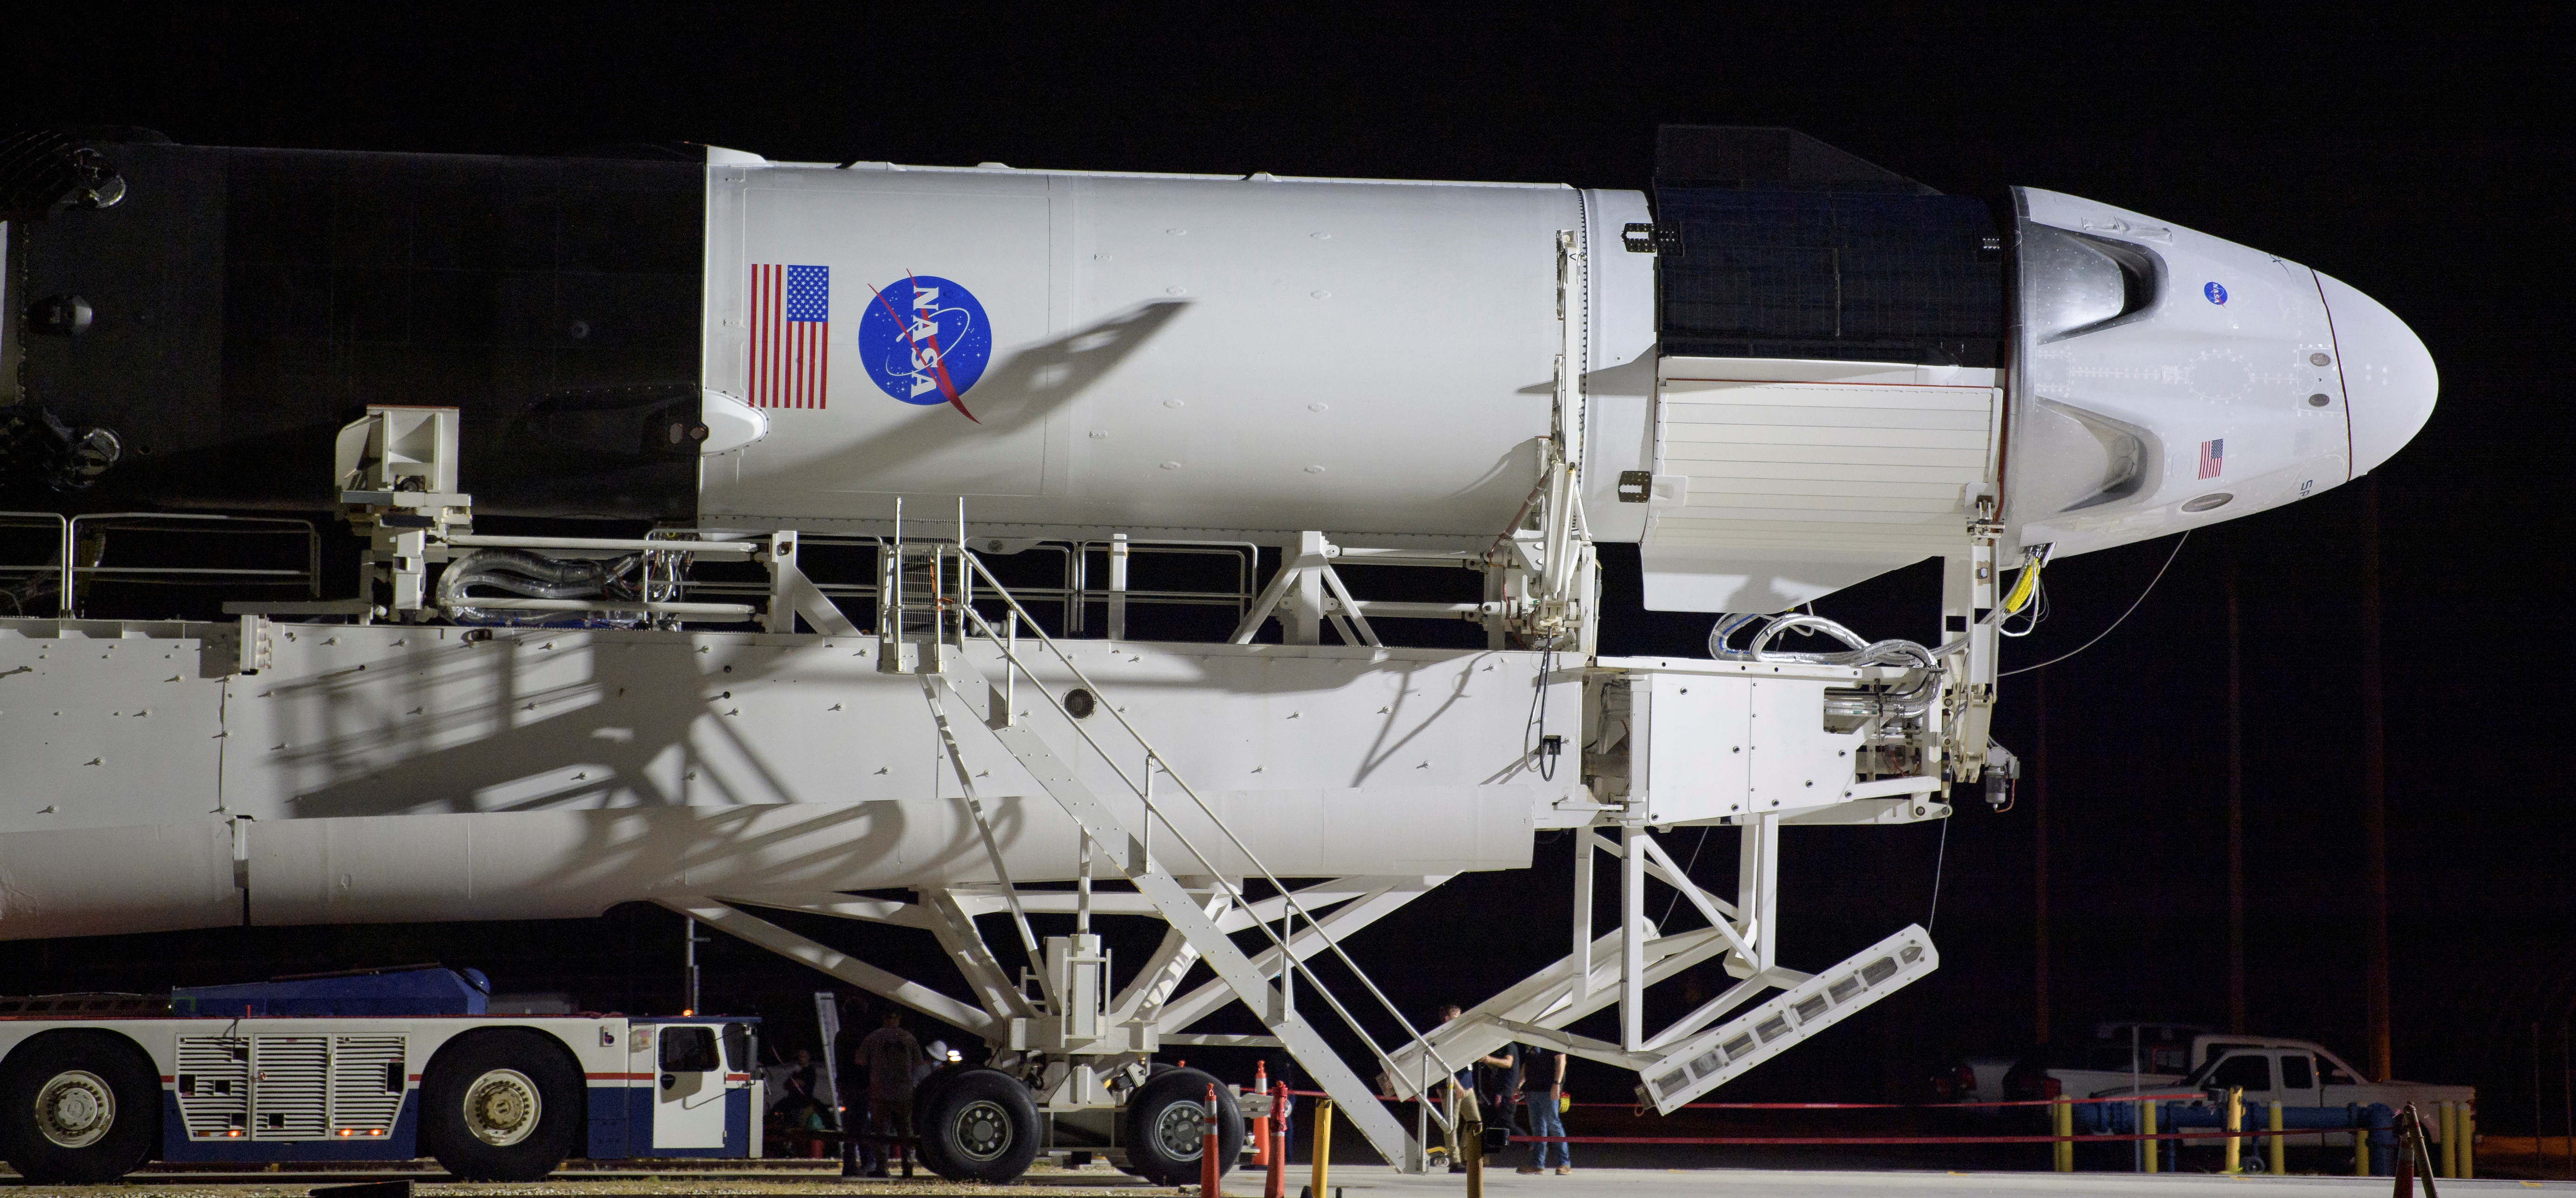 El cohete Falcon 9 de SpaceX con la capsula Crew Dragon (NASA/Bill Ingalls via REUTERS)